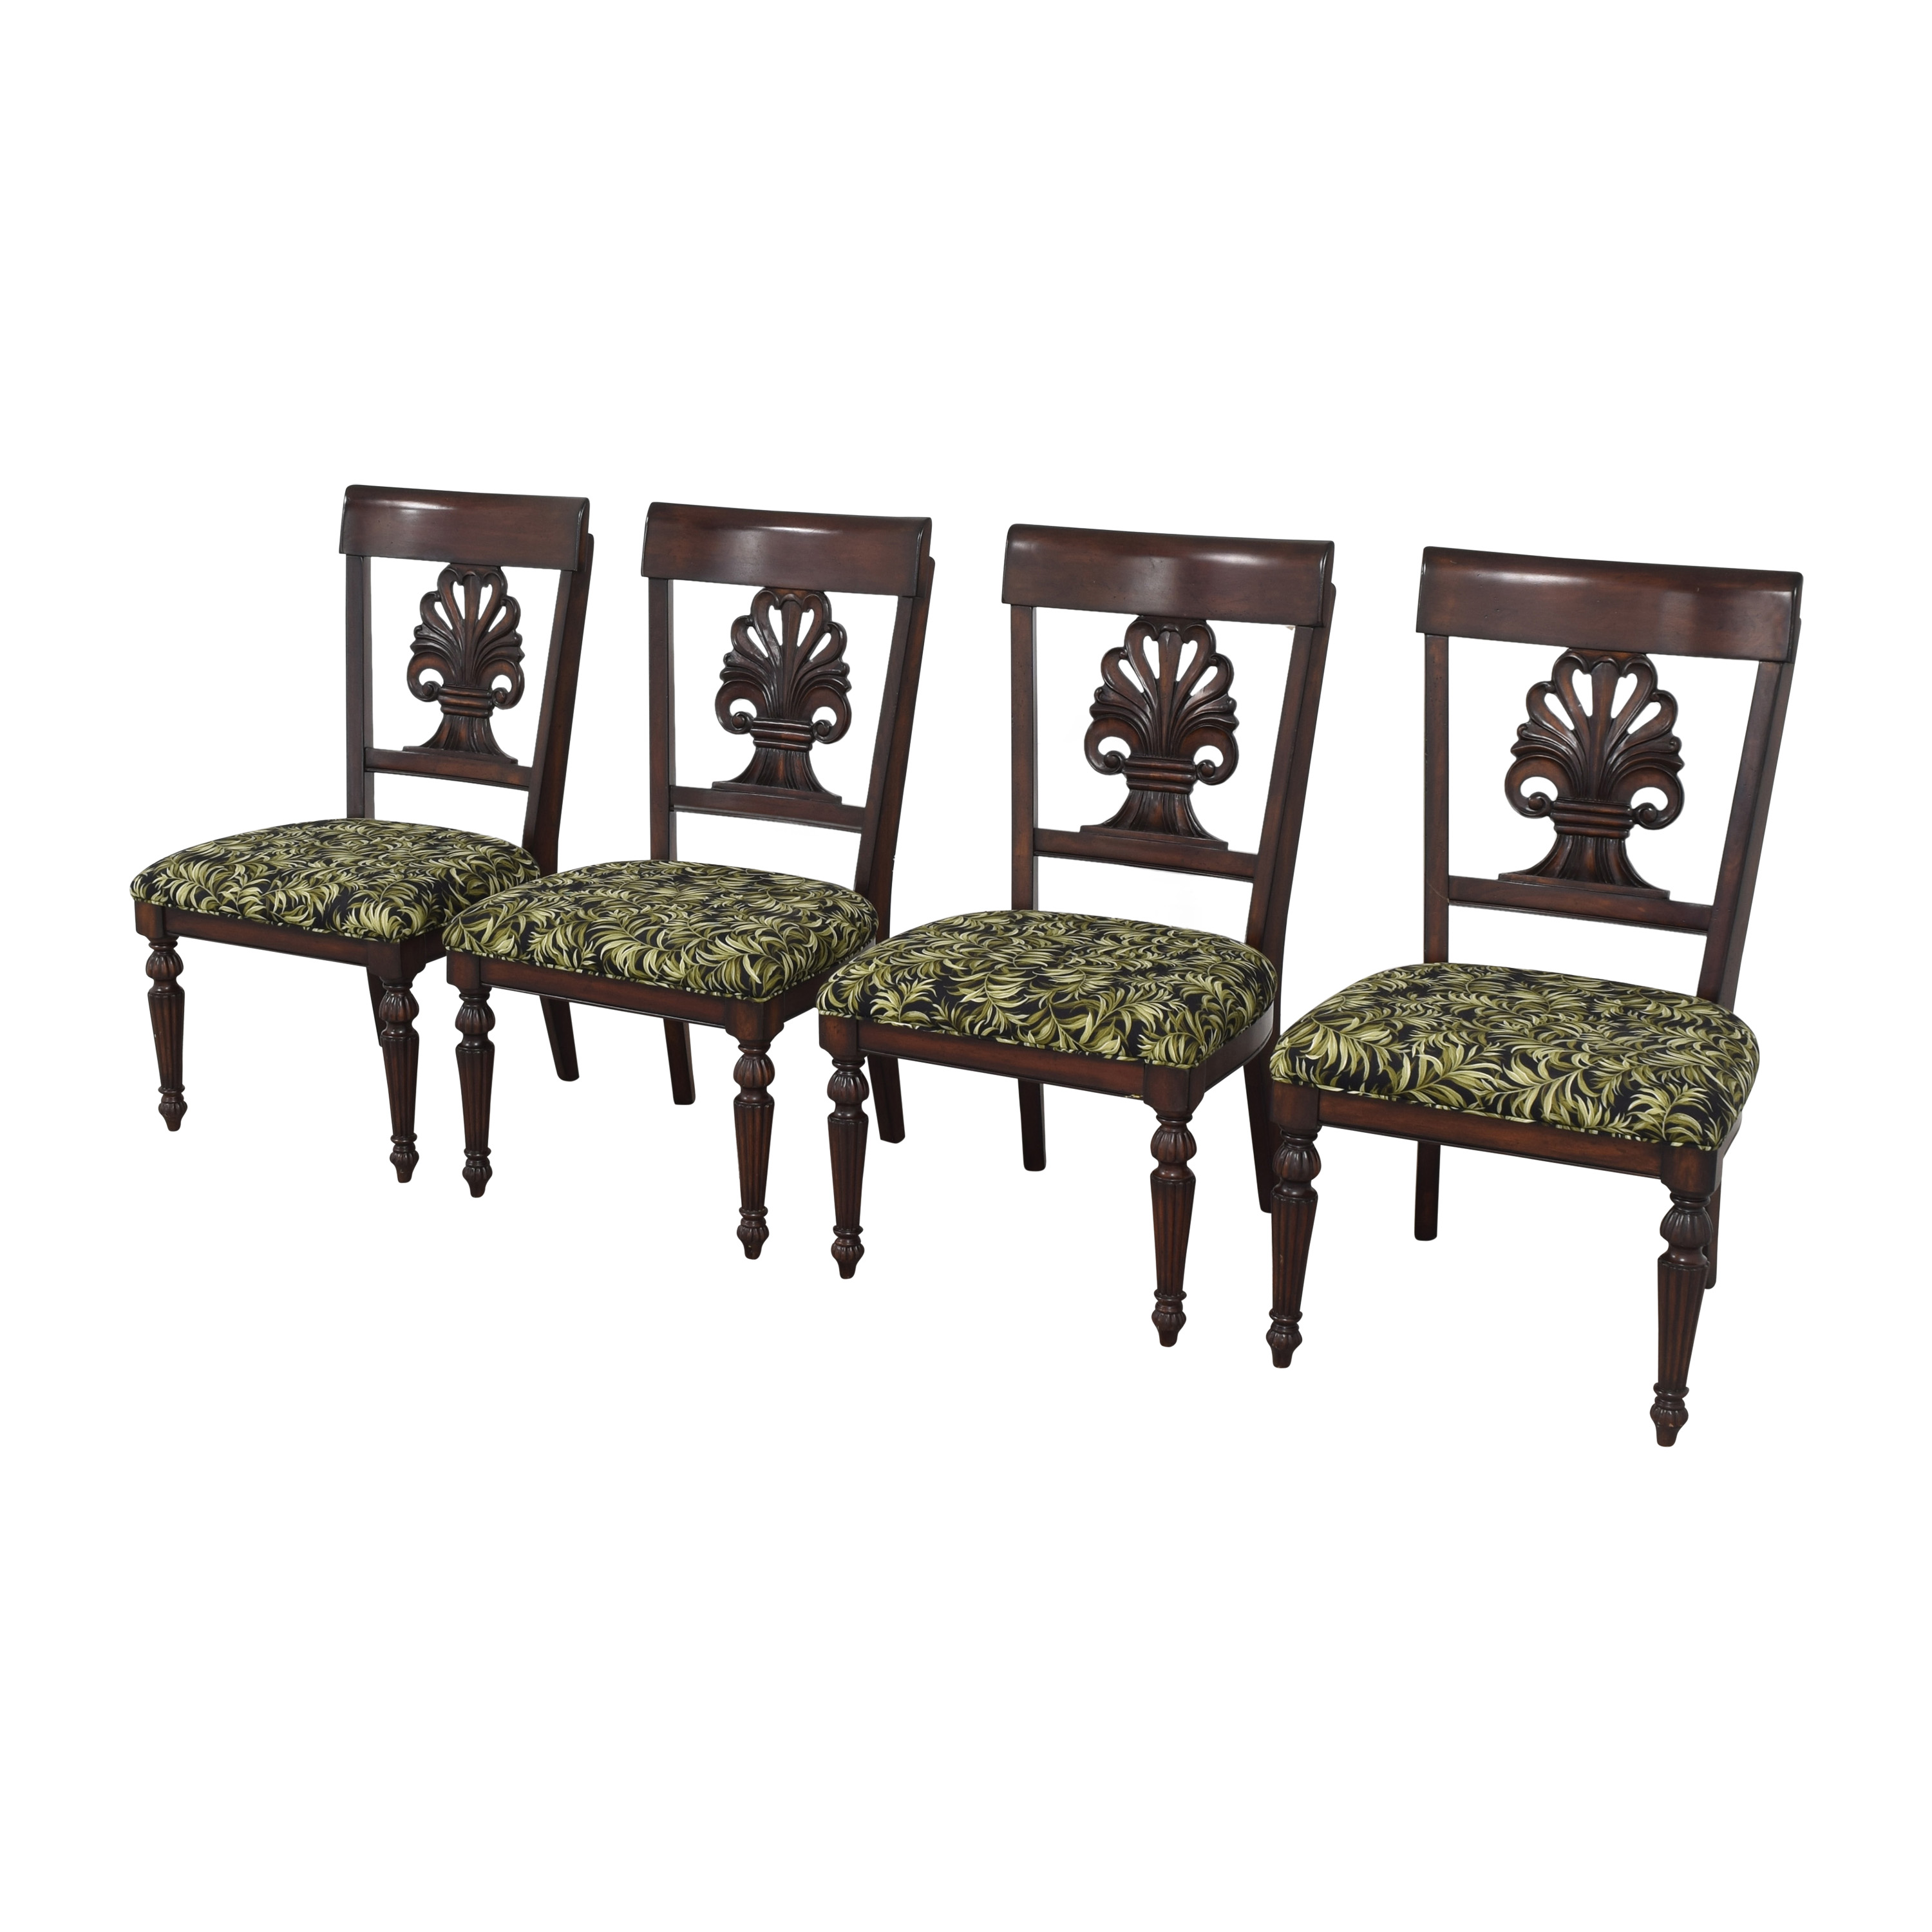 Tommy Bahama Home Tommy Bahama Dining Chairs price